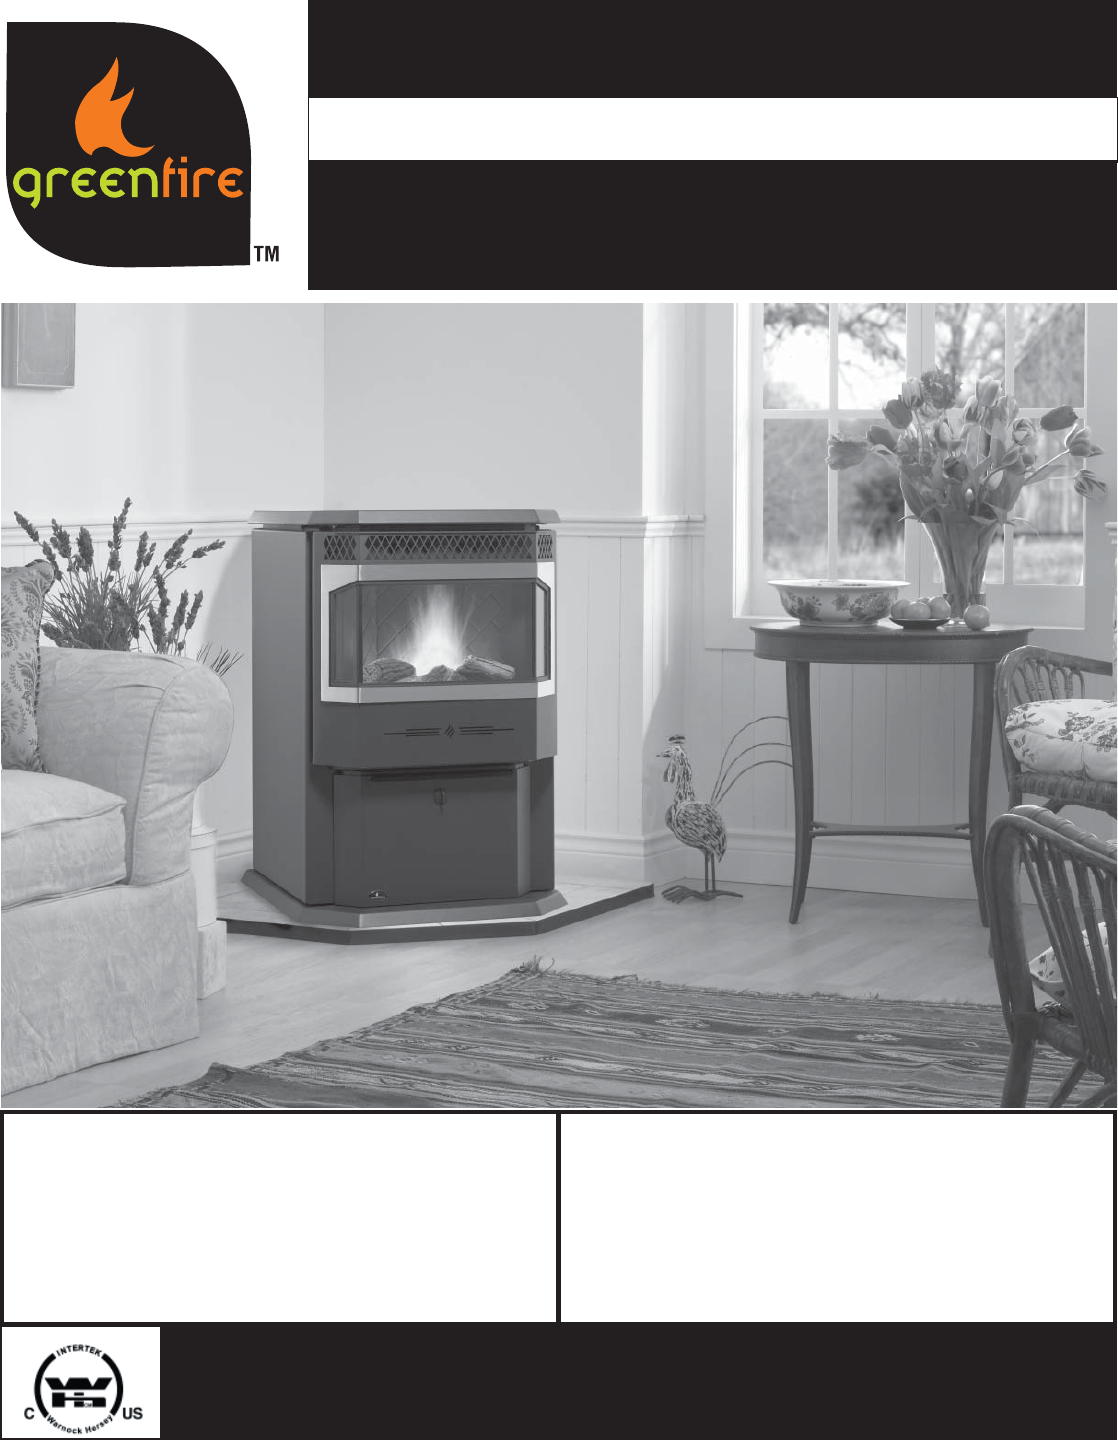 Regency Indoor Fireplace Gfi55 User Guide